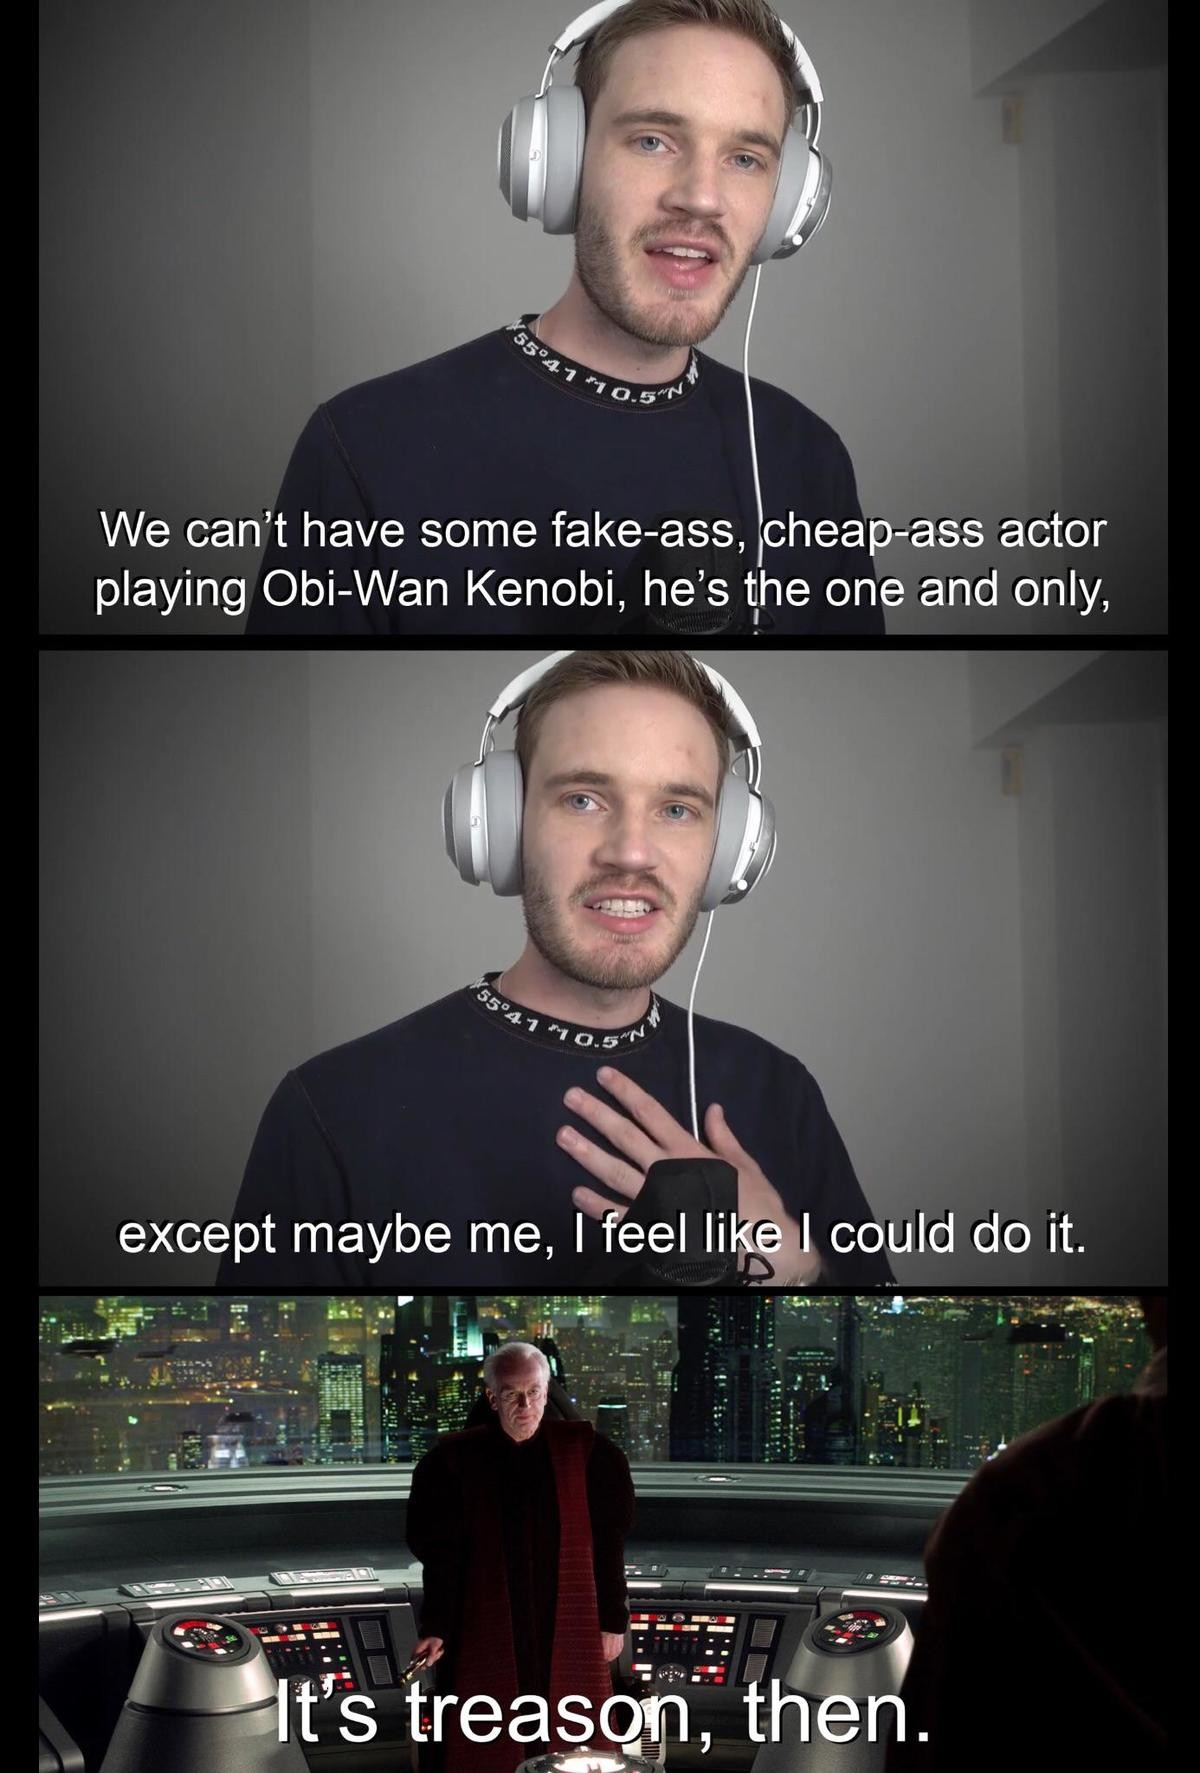 Evan McGregor. . except maybe me, Nu Ii could do it.. So yeah, Ewan McGregor is Obi-Wan, but to be honest I wouldn't really mind watching pewdiepie in an actual movie. I'd be very interested in how he performs unde